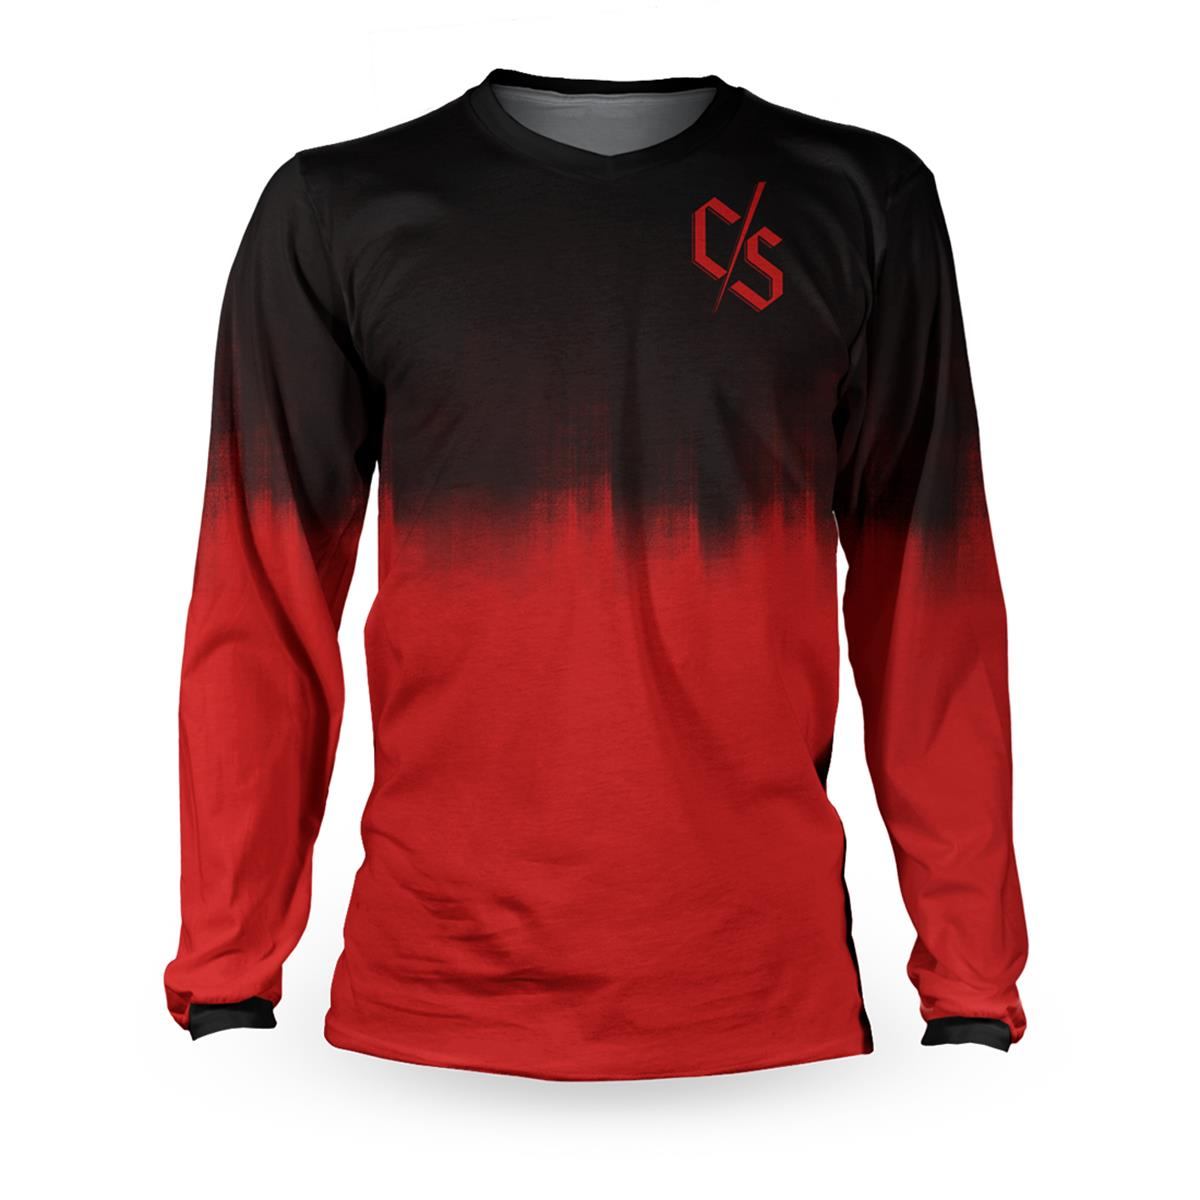 Loose Riders Downhill-Jersey Langarm C/S Dipped Schwarz/Rot